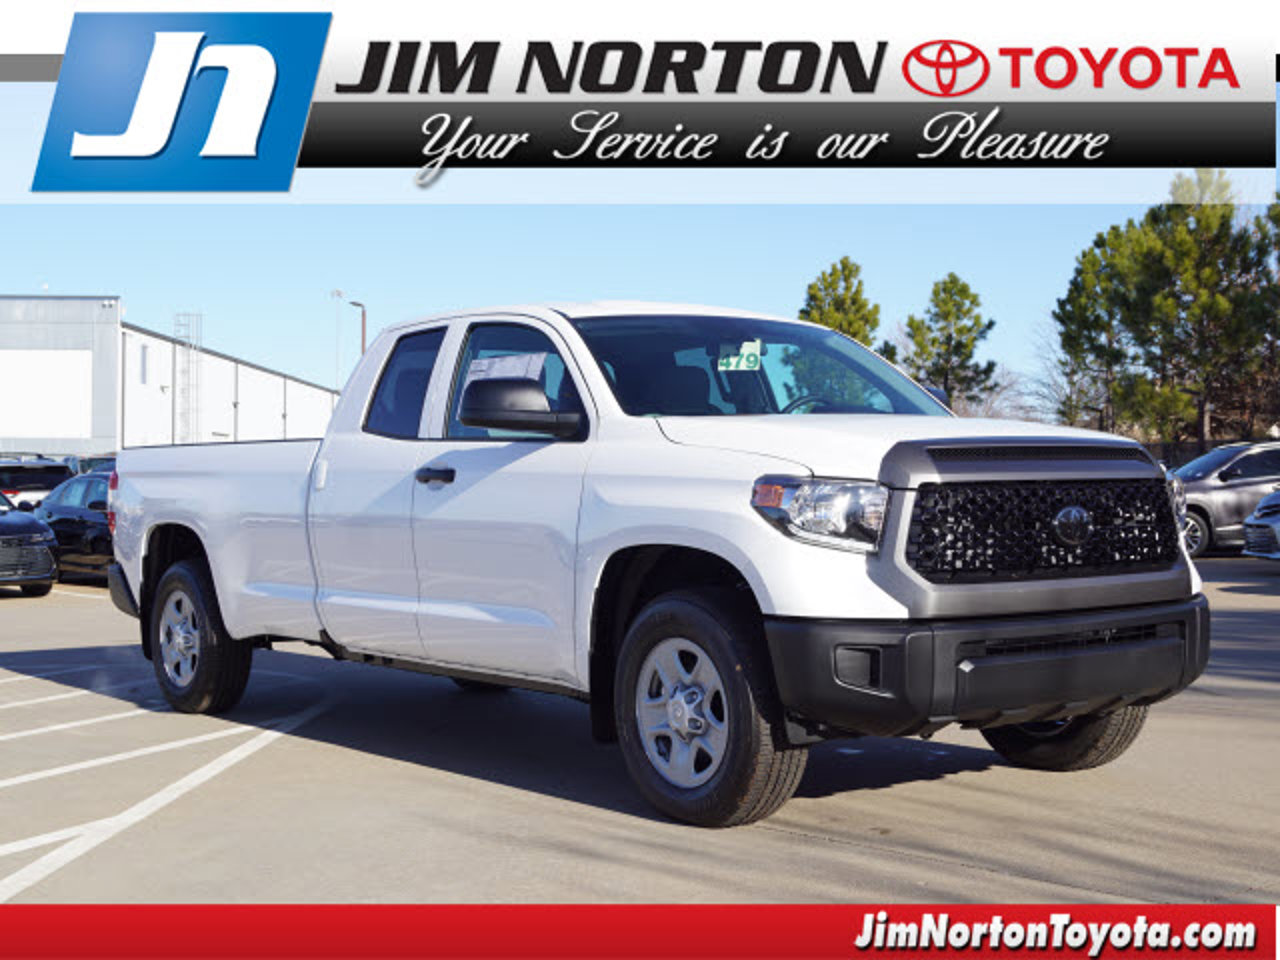 2020 Toyota Tundra SR 2WD Double Cab Long Bed 8.1' Bed 5.7L